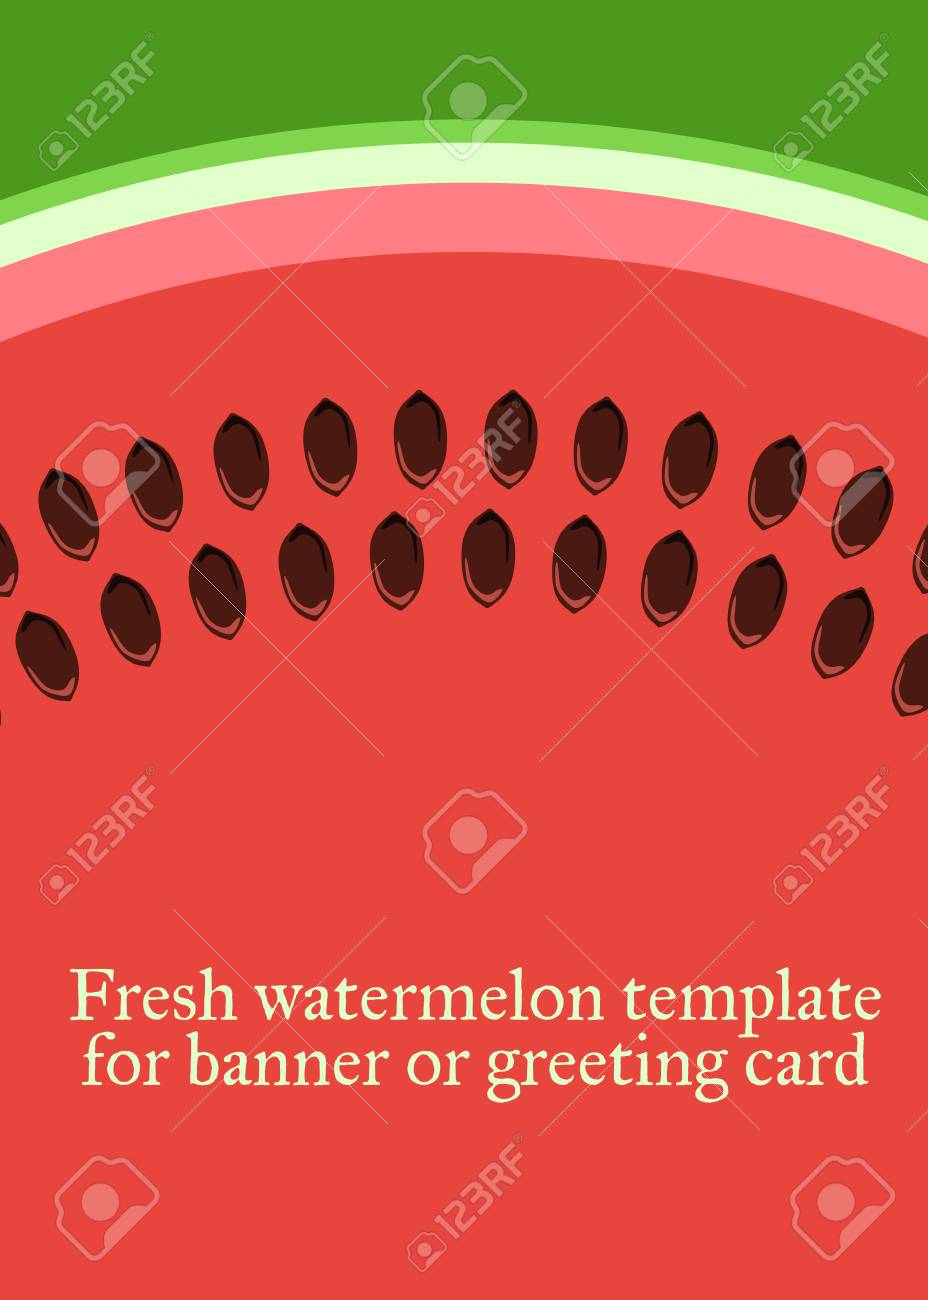 watermelon vector template for greeting card or banner royalty free